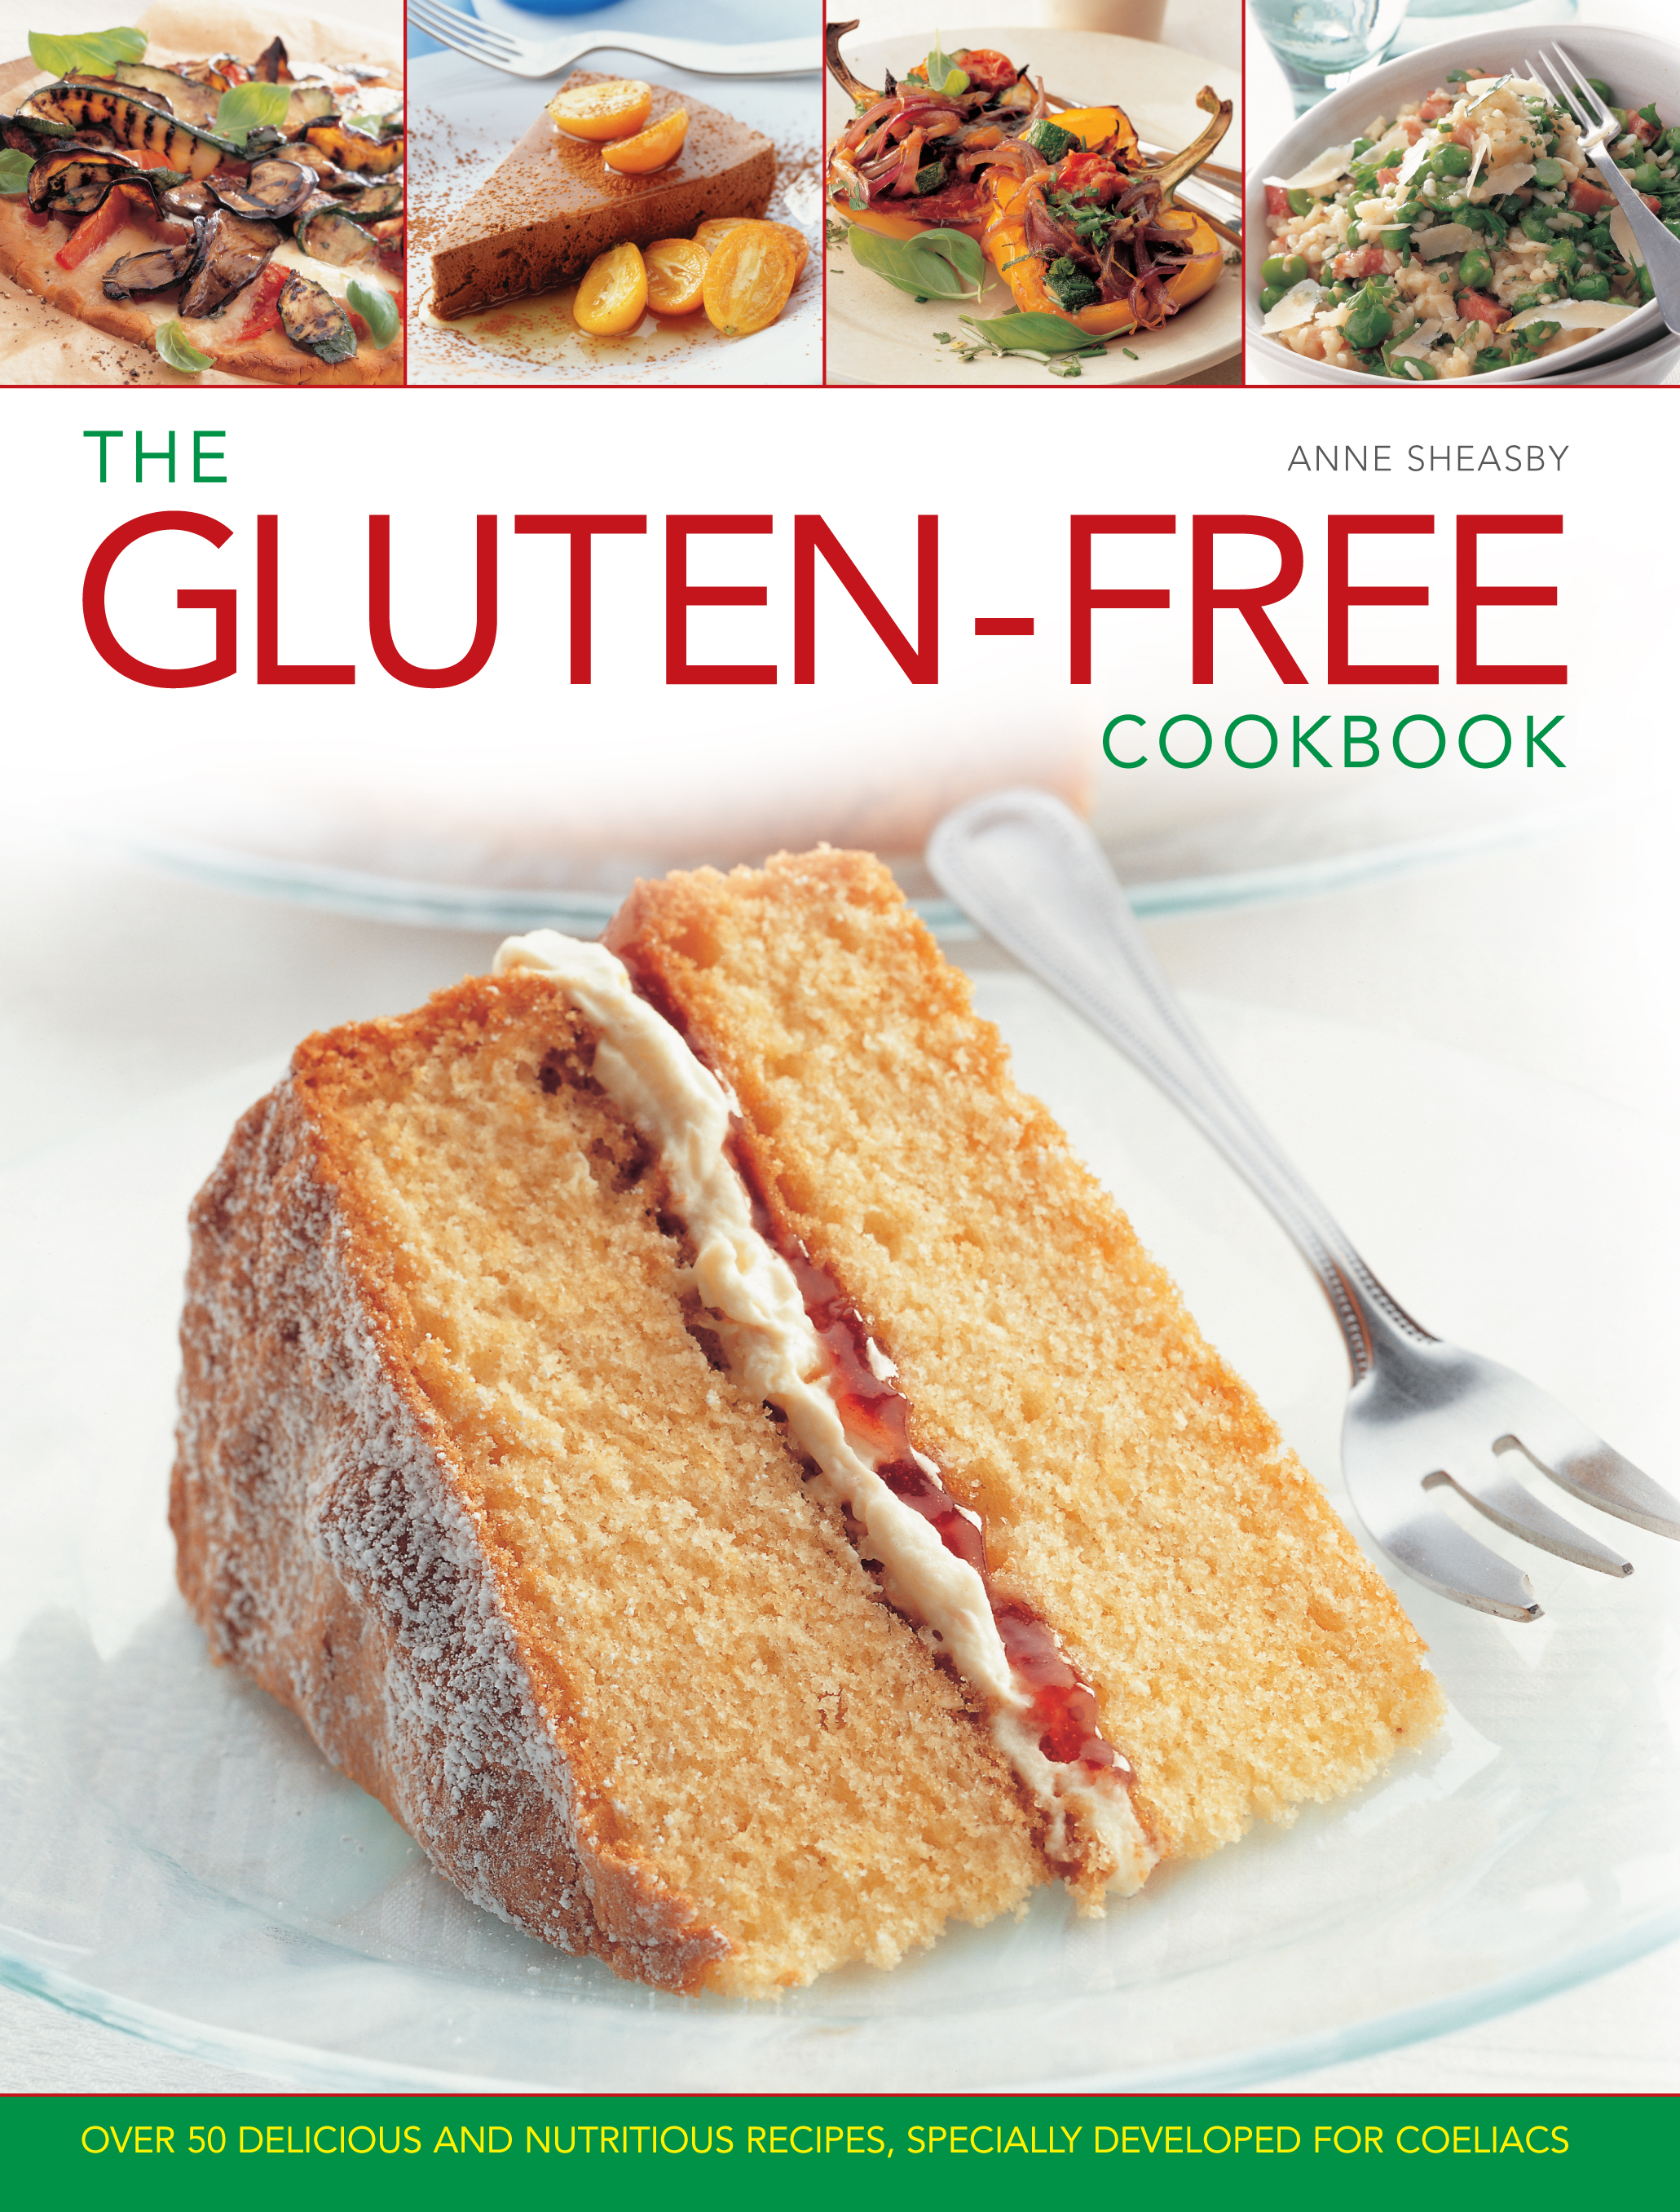 The Gluten-free Cookbook Over 50 Delicious and Nutritious Recipes,  Specially Developed for Coeliacs